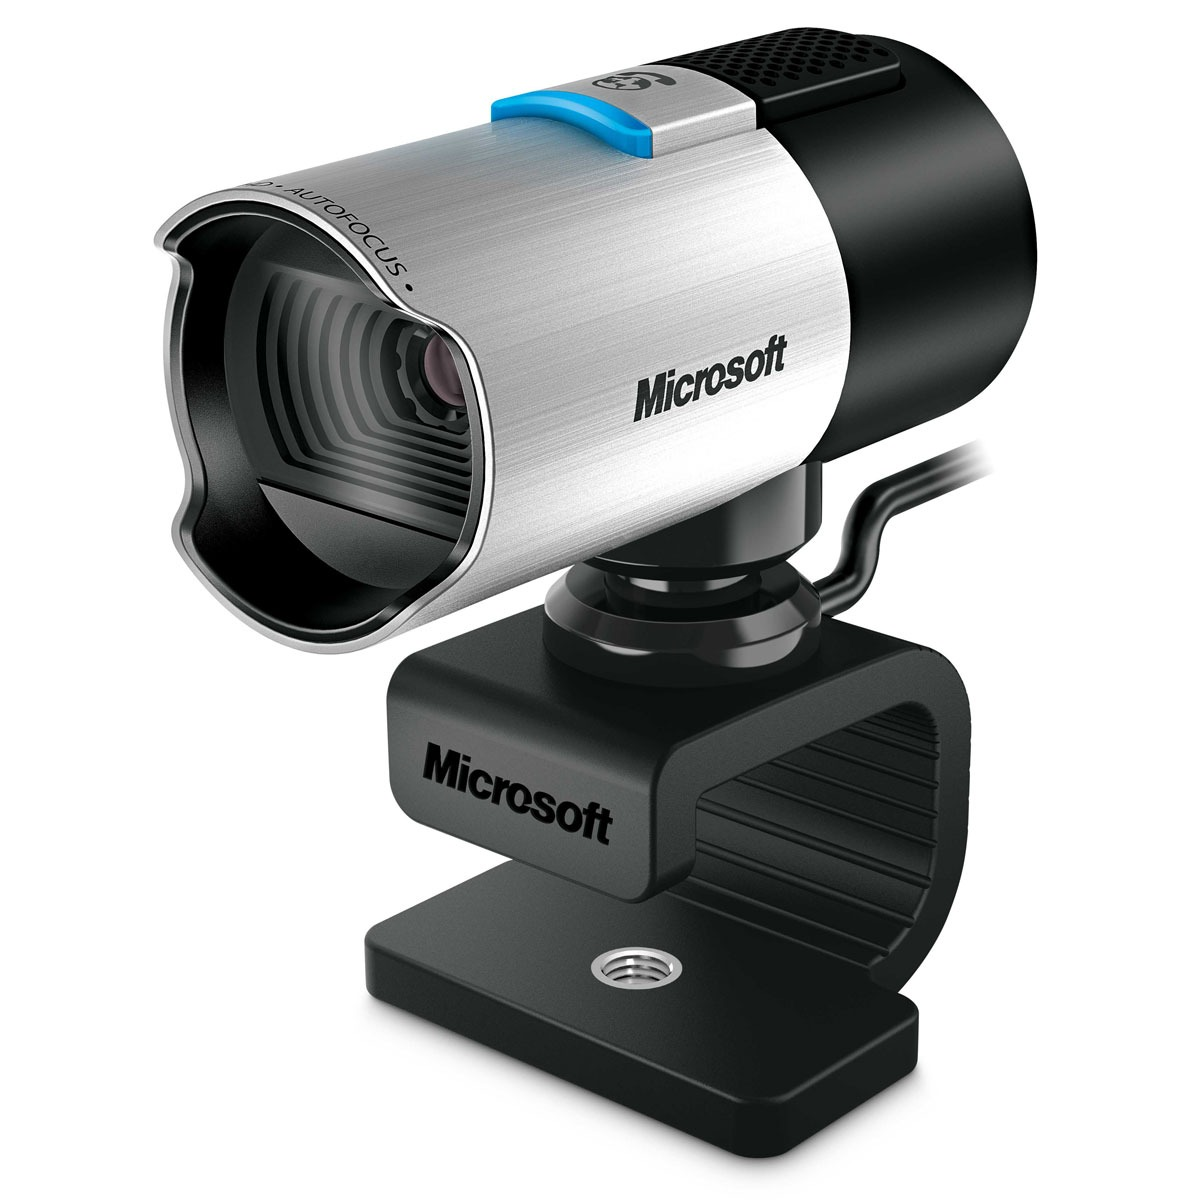 Webcam Microsoft LifeCam Studio Microsoft LifeCam Studio - Webcam Full HD 1080p